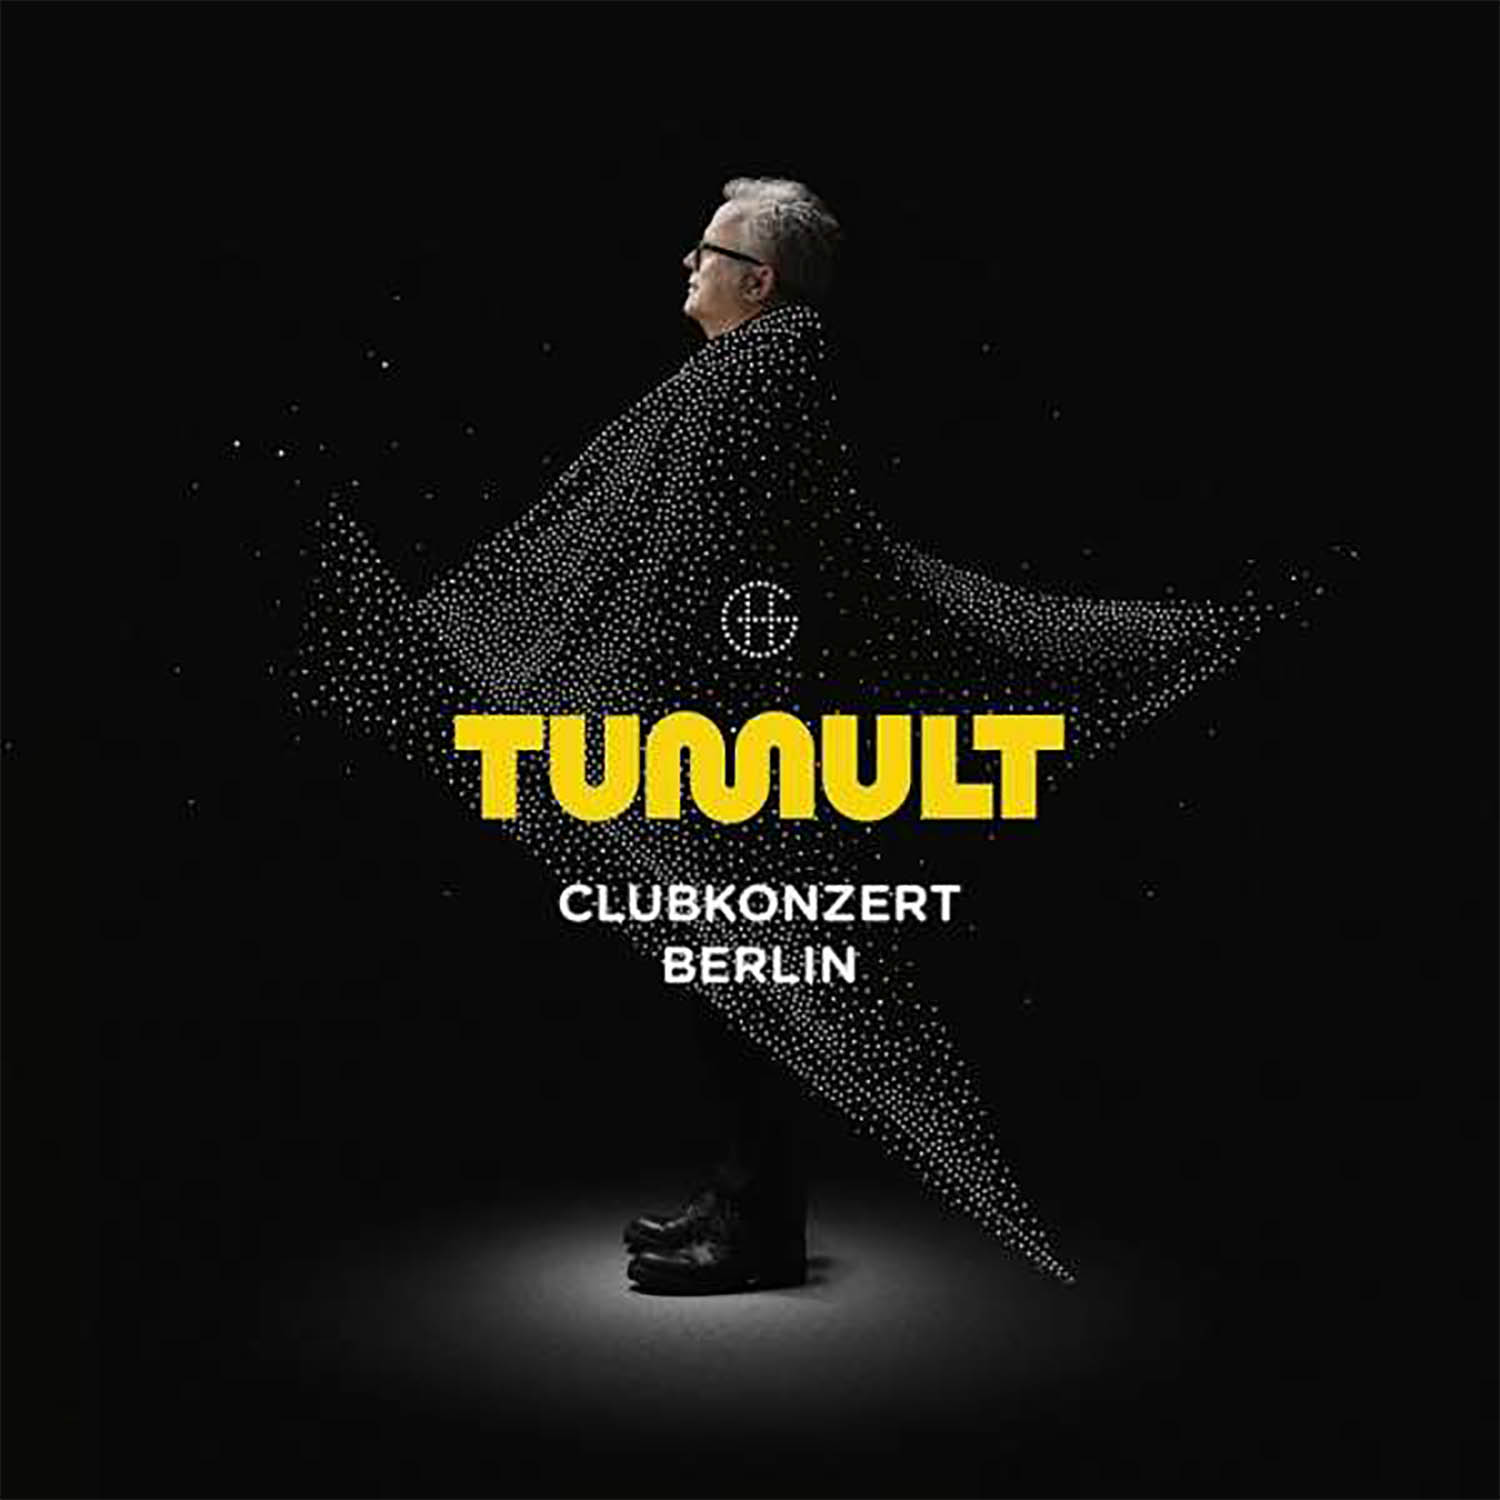 Grönemeyer Tumult - Clubkonzert Berlin CD/DVD